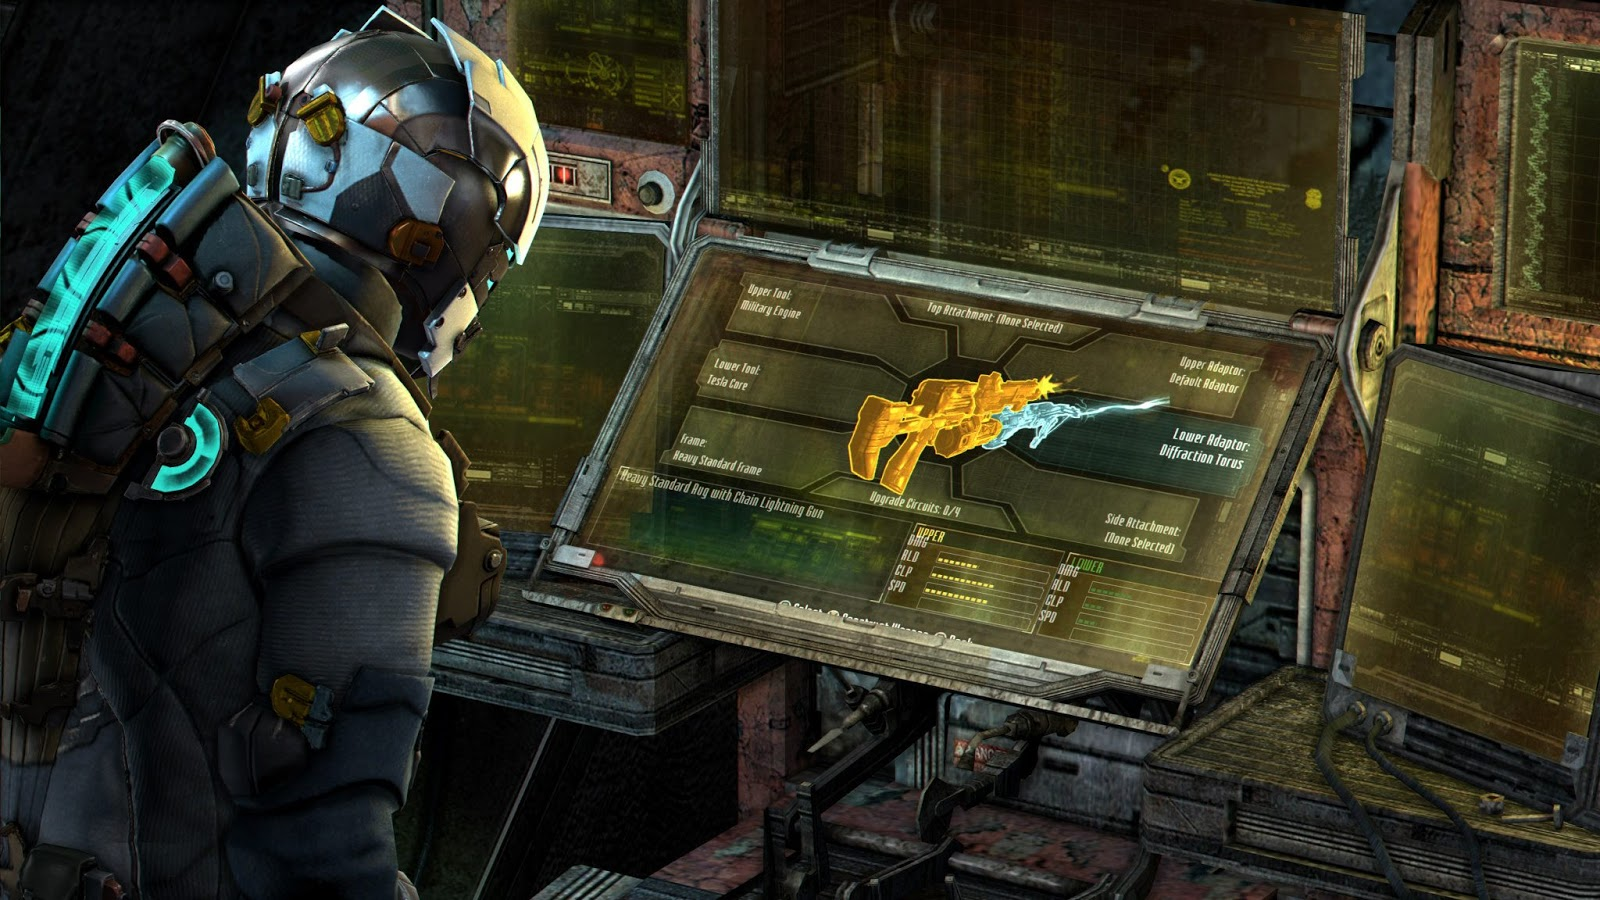 Computer screens in Dead Space with interactive interfaces